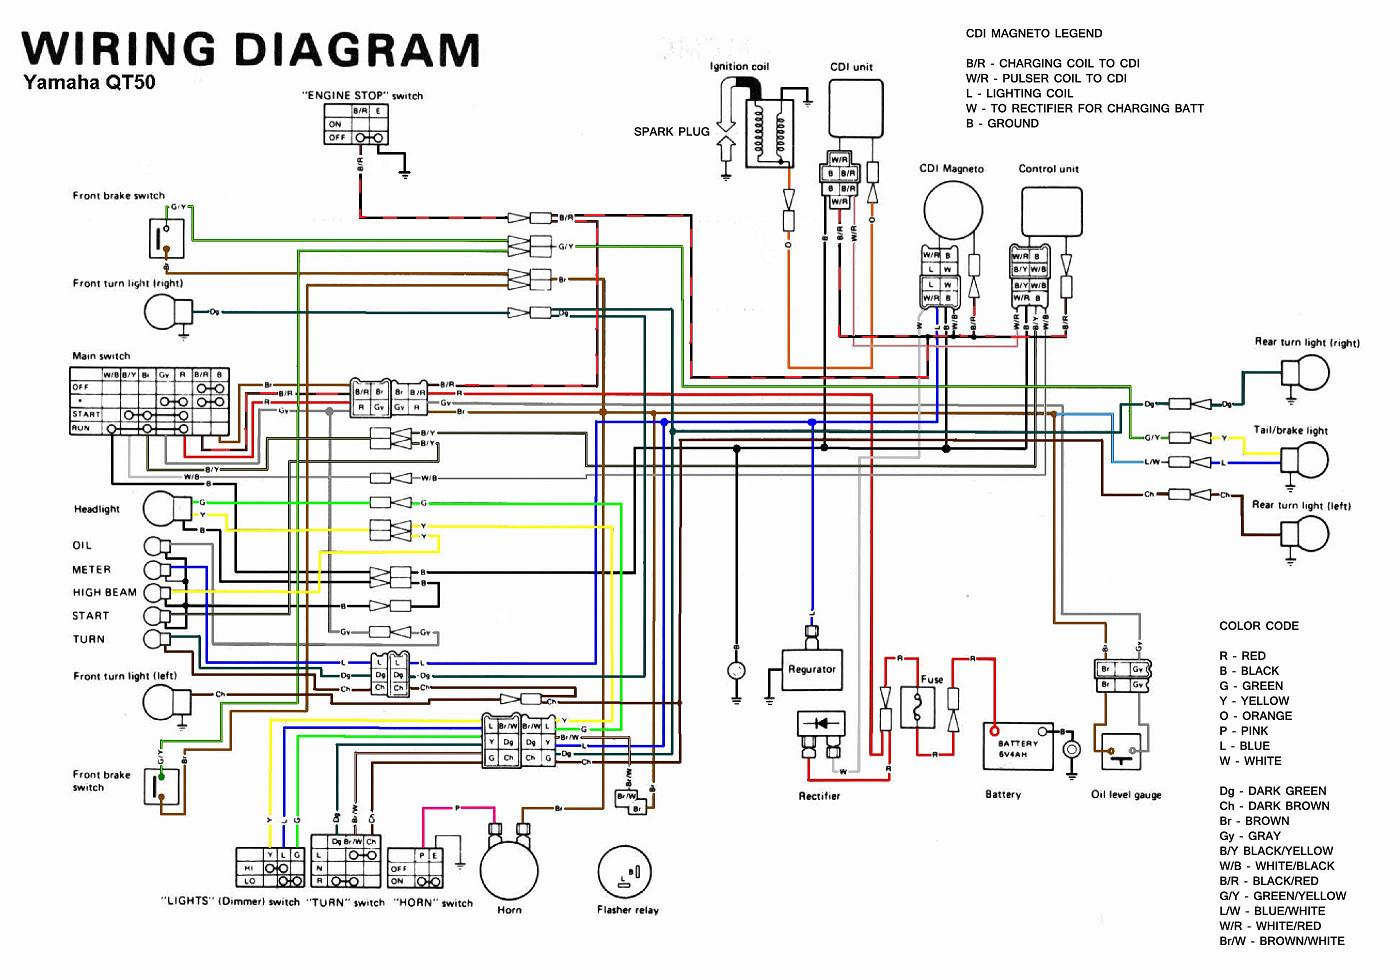 hight resolution of 1978 yamaha dt 125 wiring diagram wiring library 1978 yamaha dt100 1978 yamaha dt125 wiring schematic